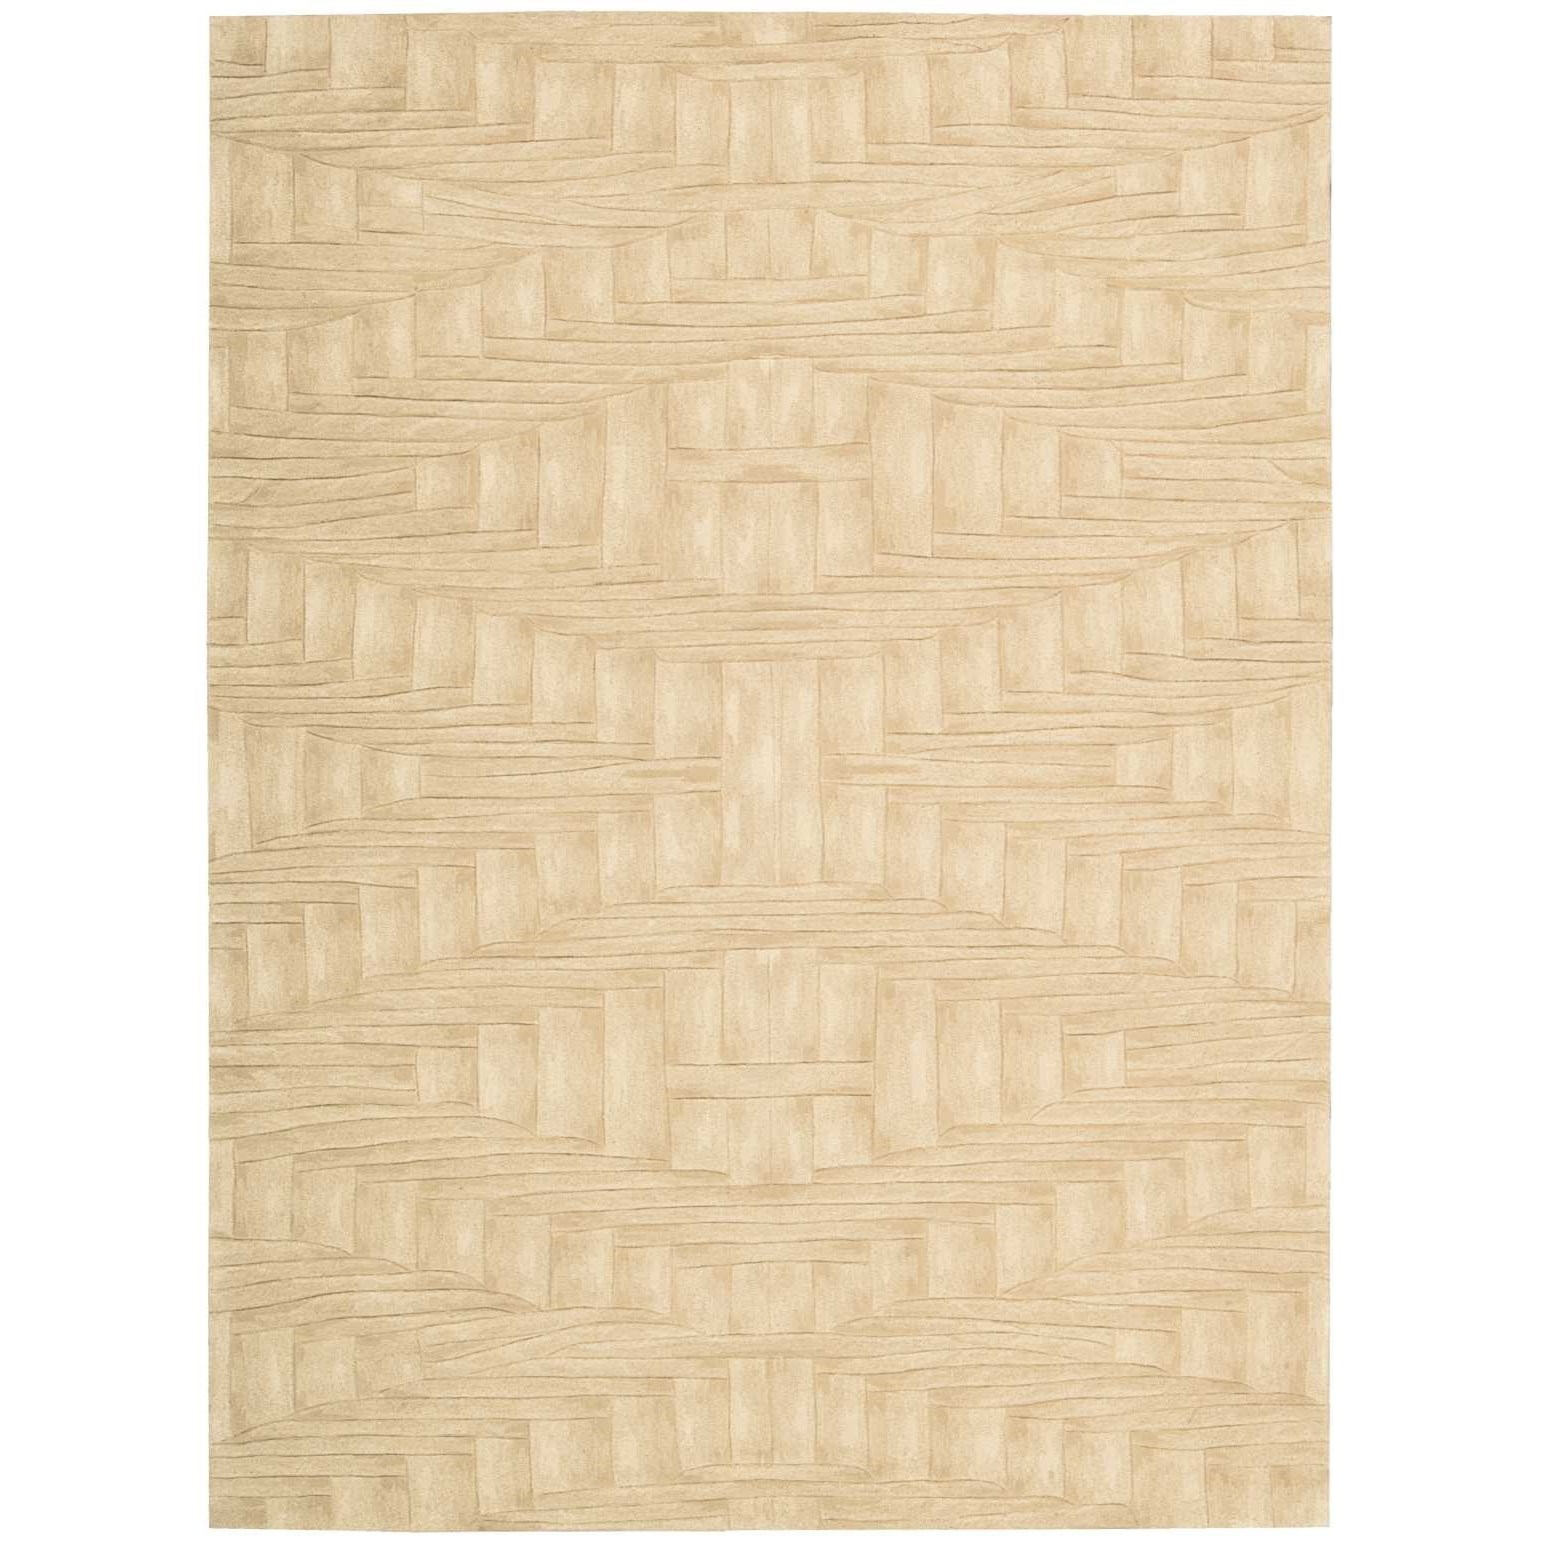 "Moda 3'6"" x 5'6"" Shell Rectangle Rug by Nourison at Sprintz Furniture"